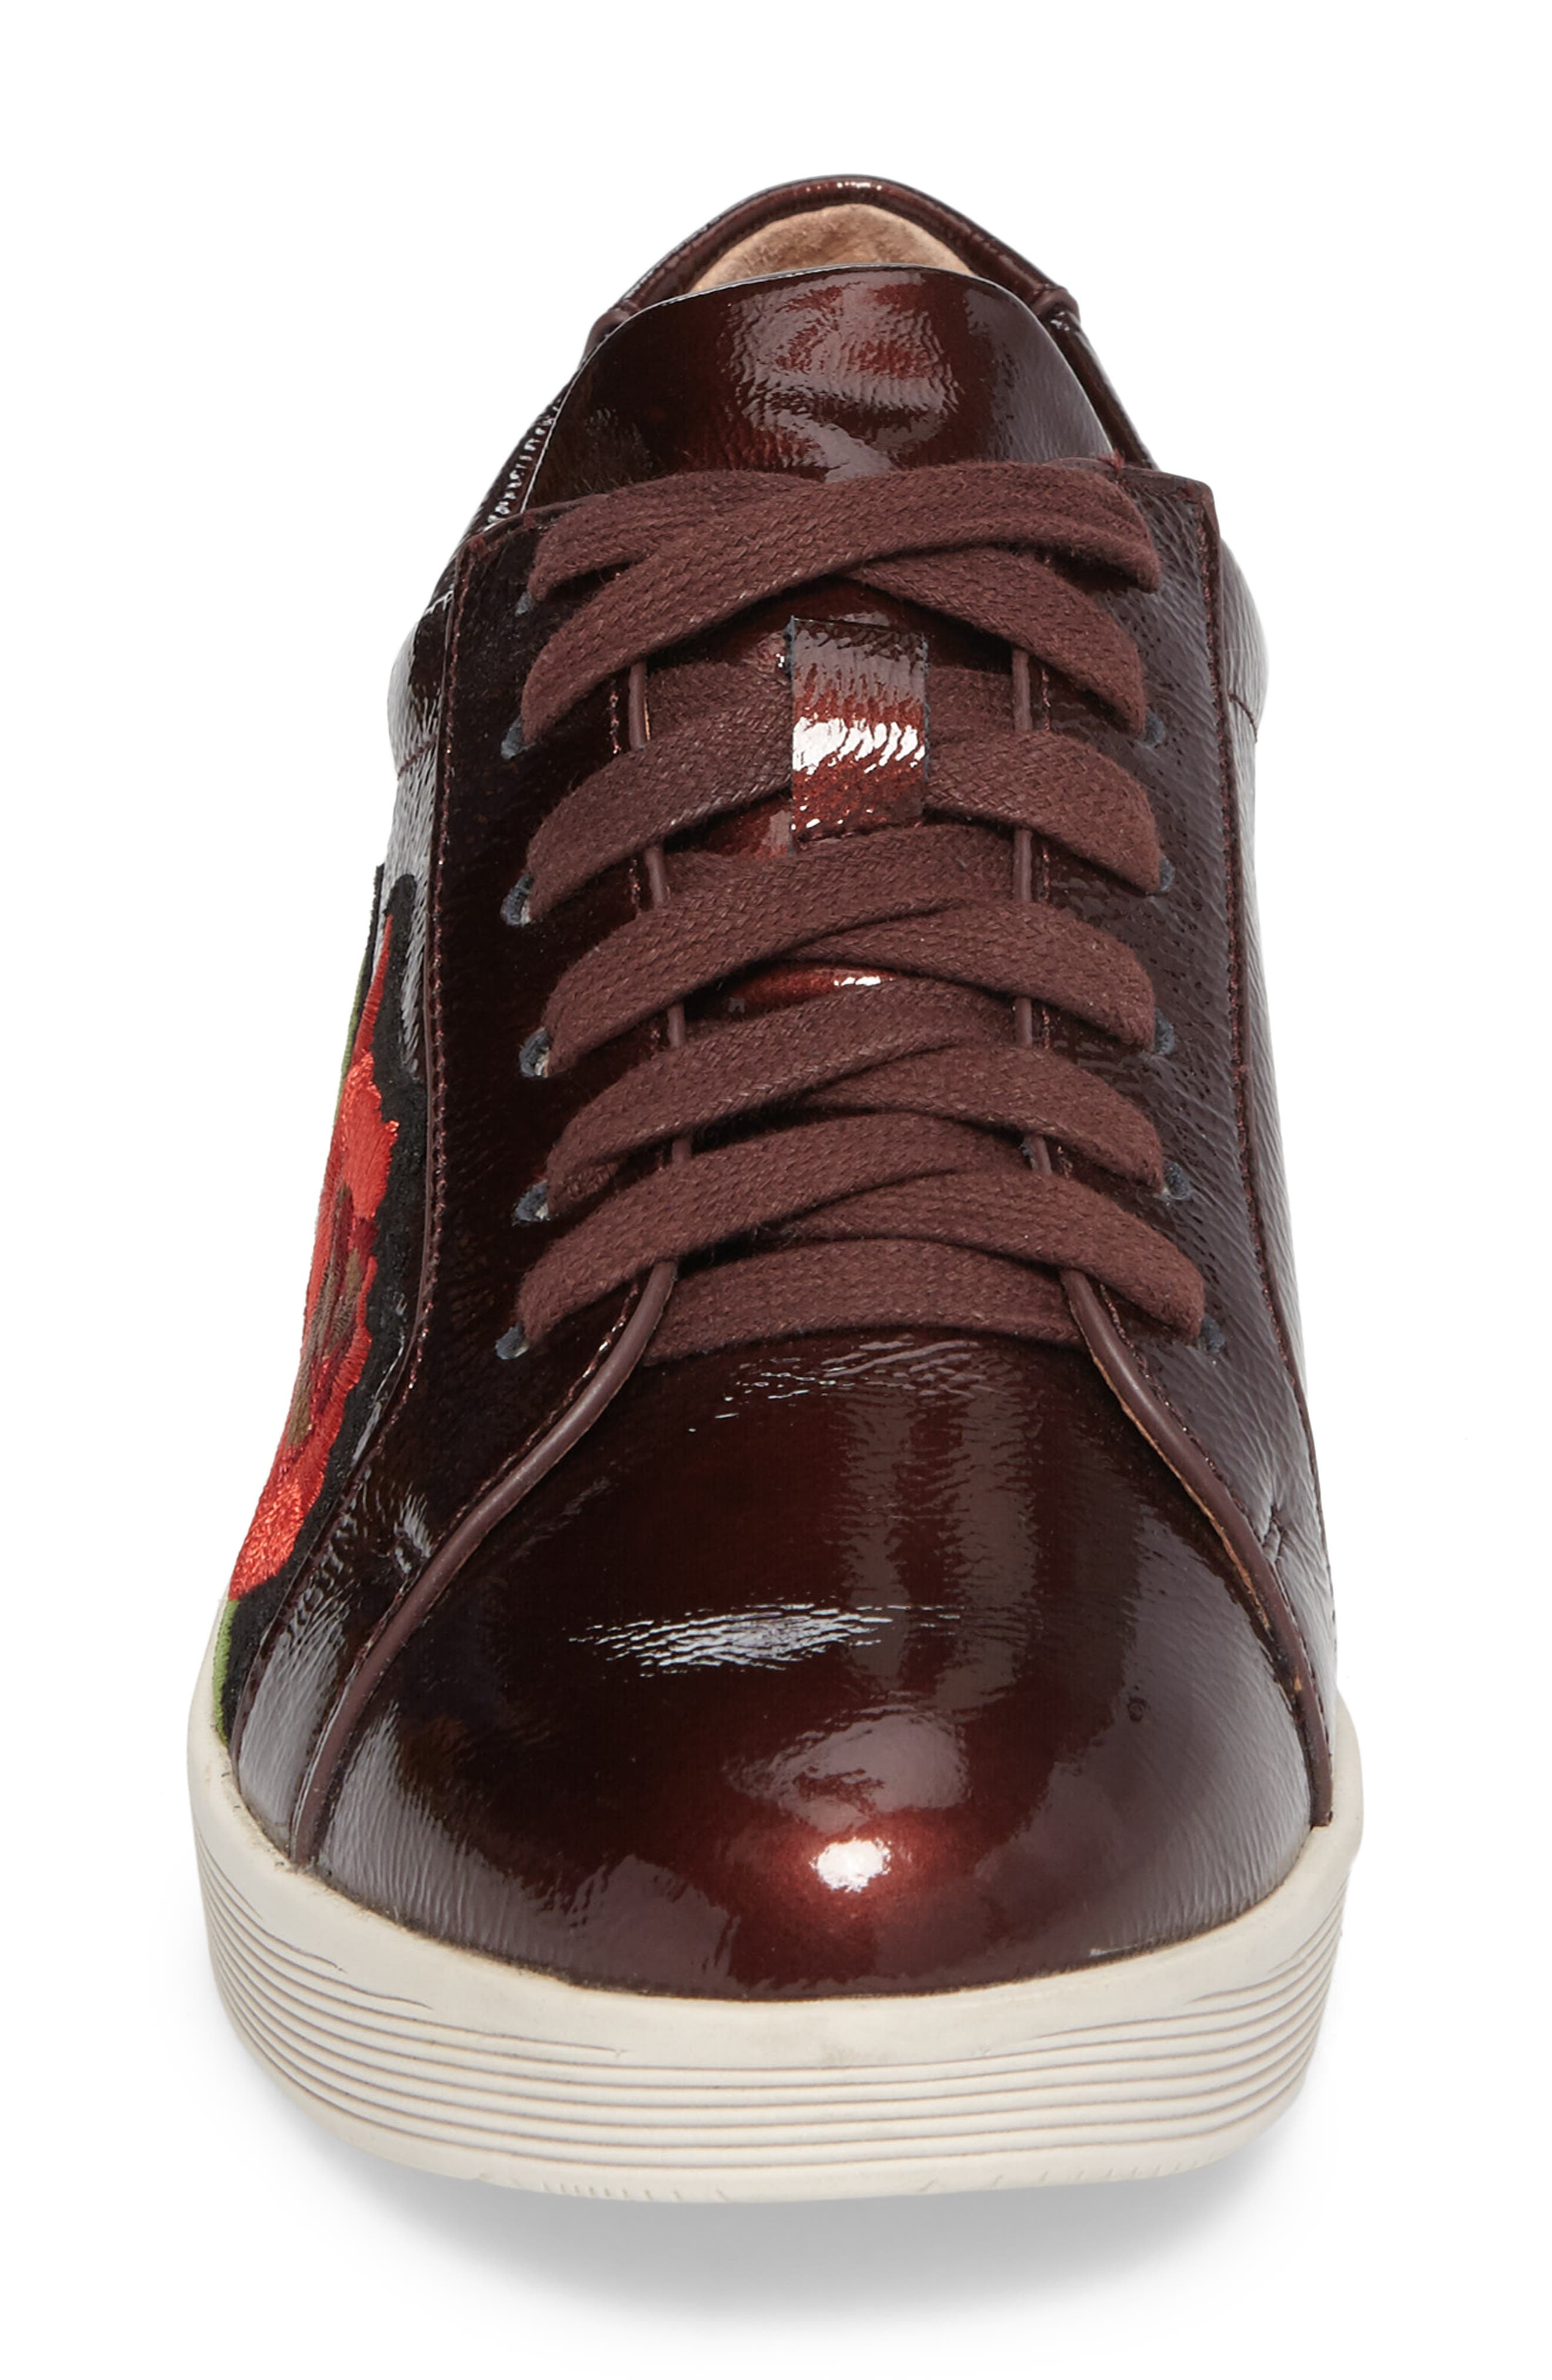 Gentle Soles Haddie Rose Sneaker,                             Alternate thumbnail 4, color,                             Wine Patent Leather